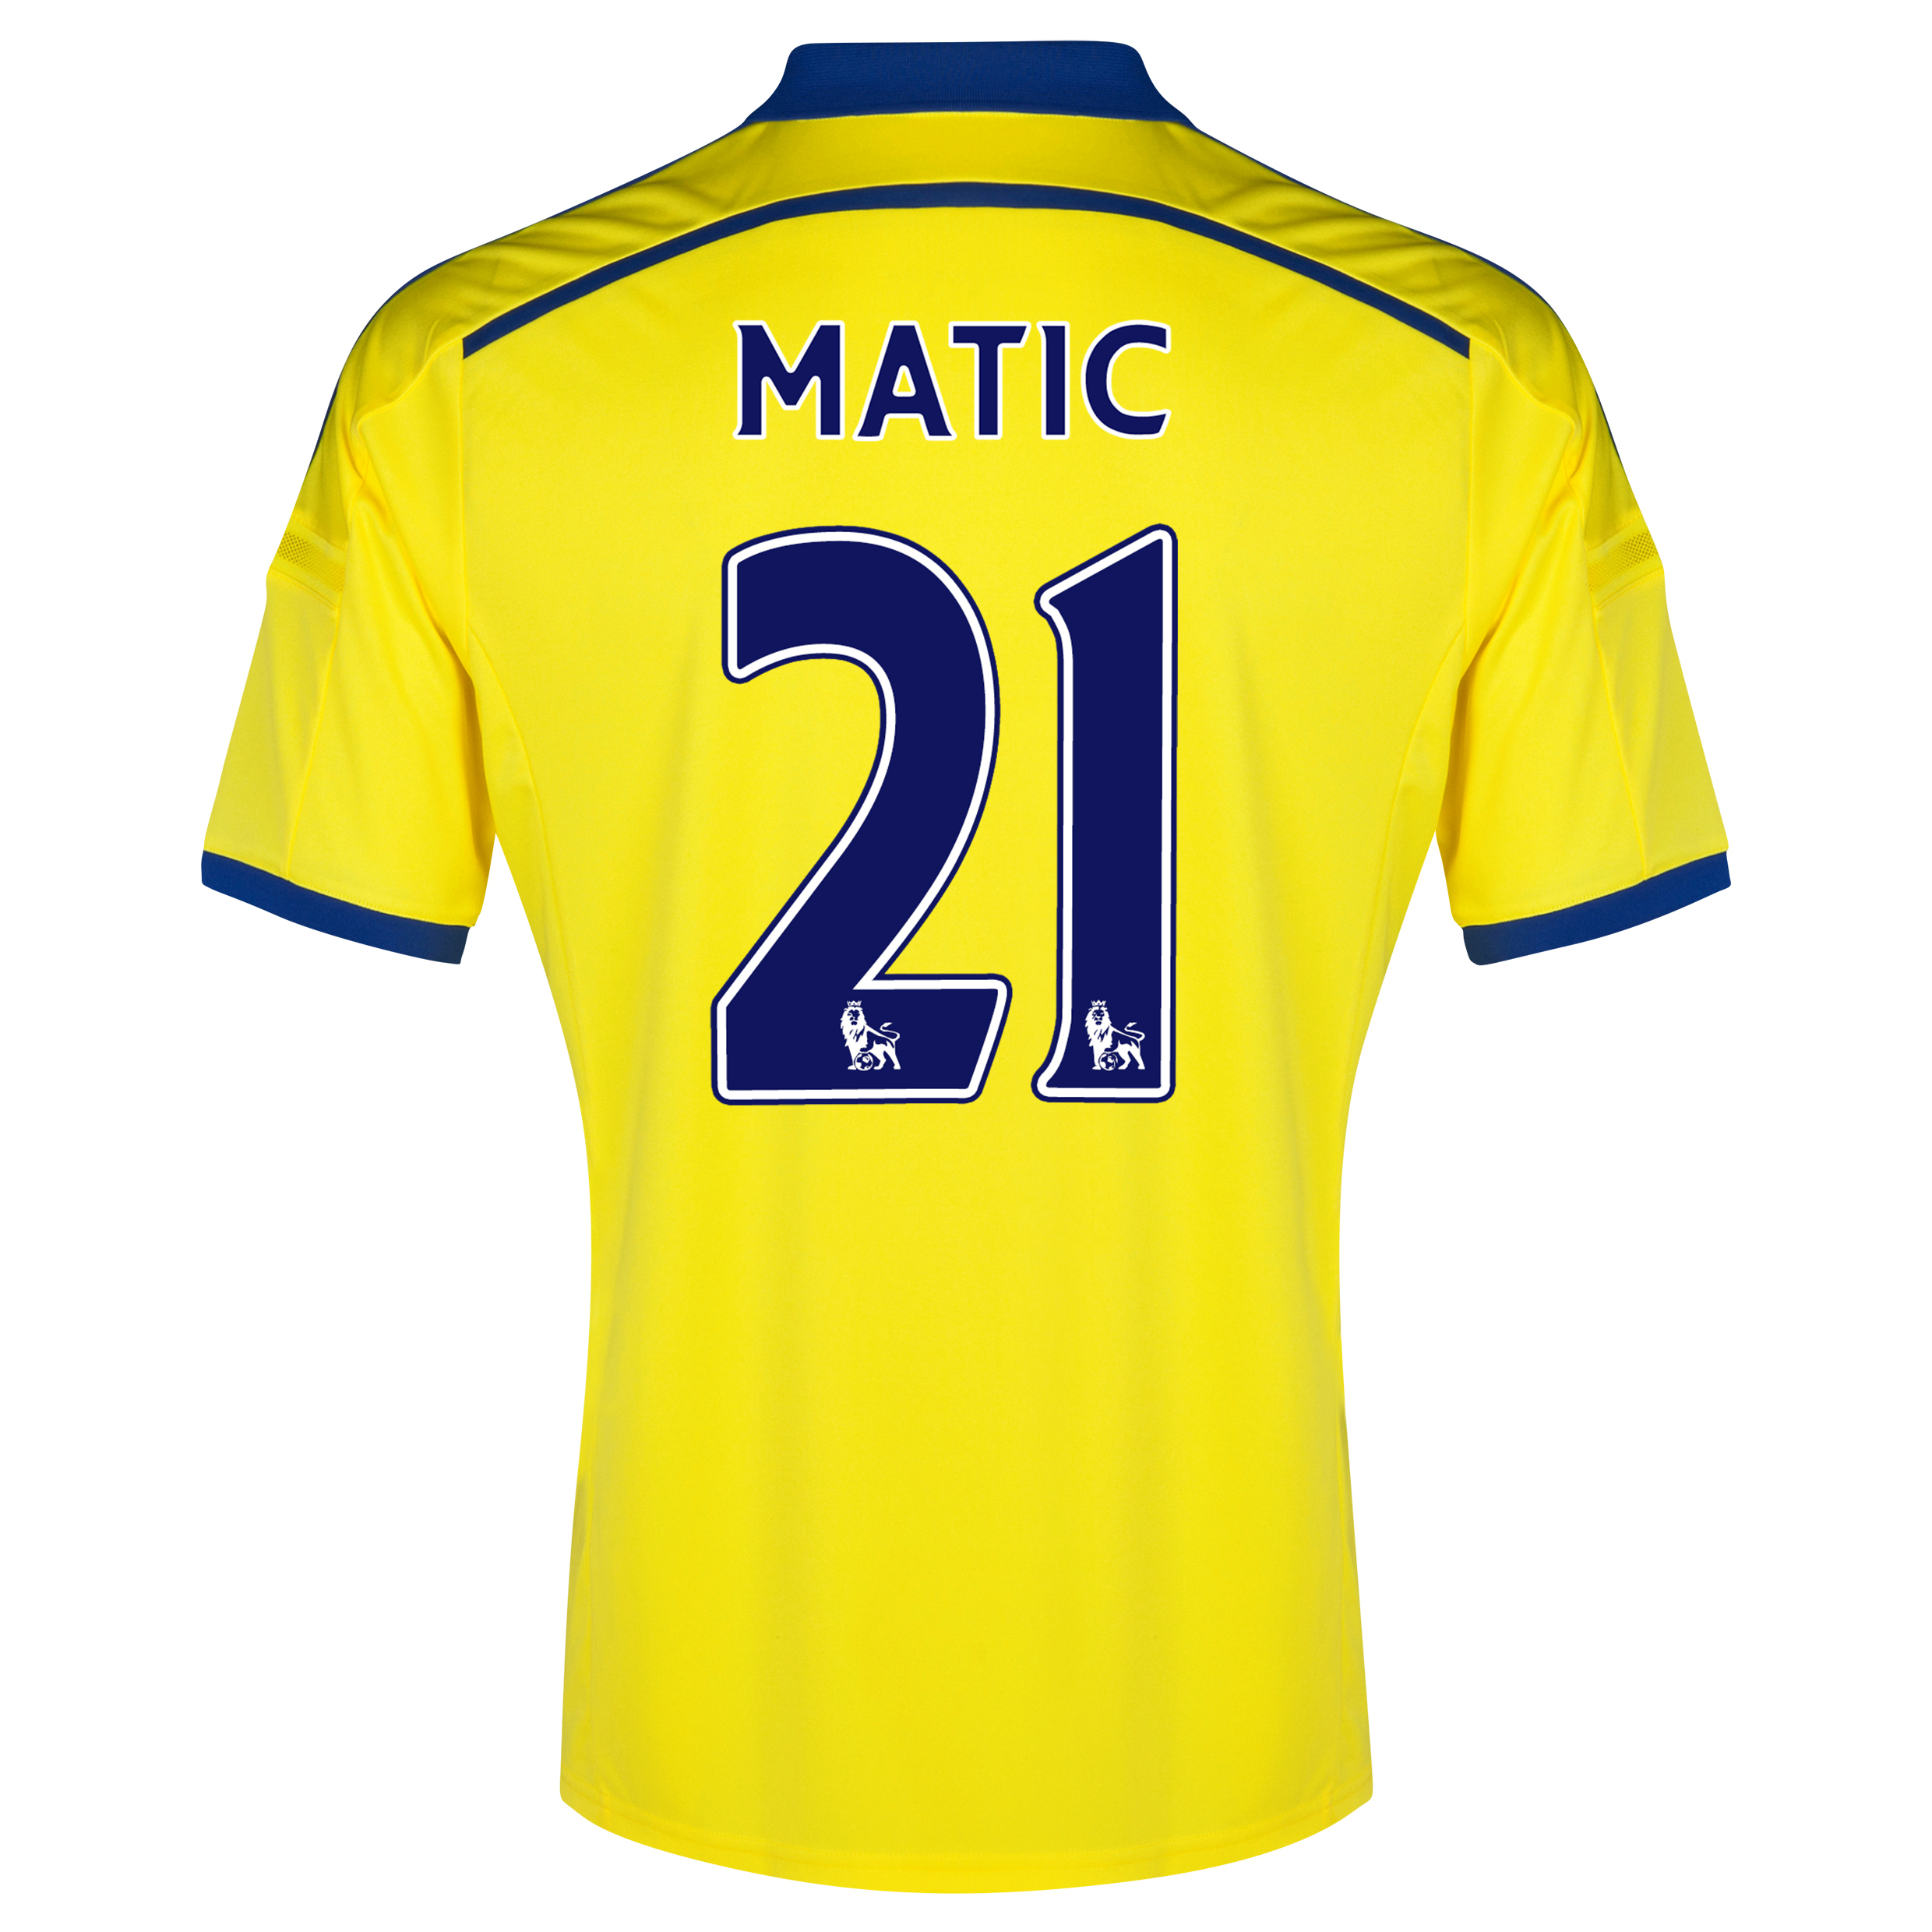 with Matic 21 printing